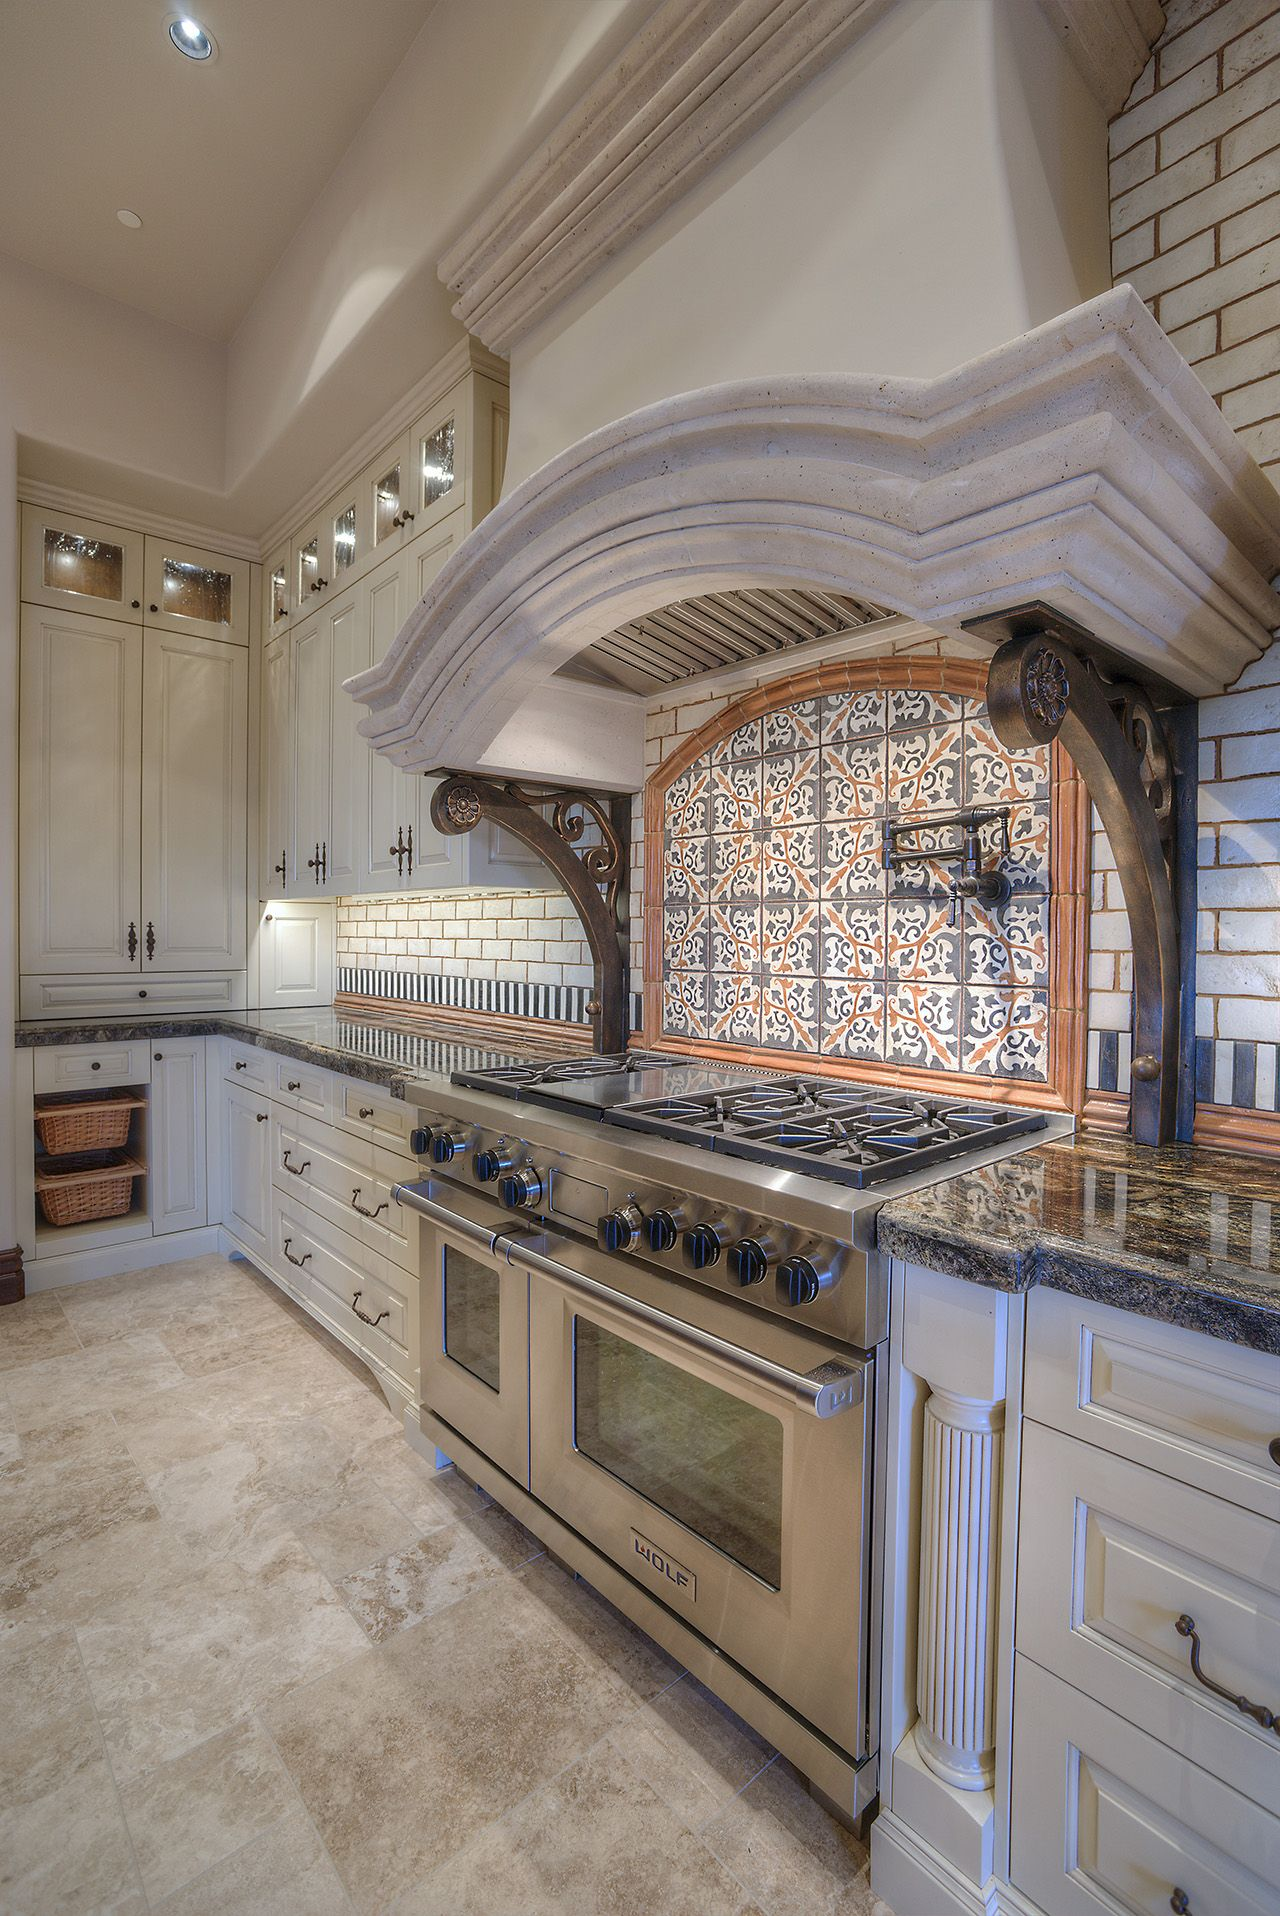 Luxury Kitchen with White Cabinetry This Custom Stone Hood sits